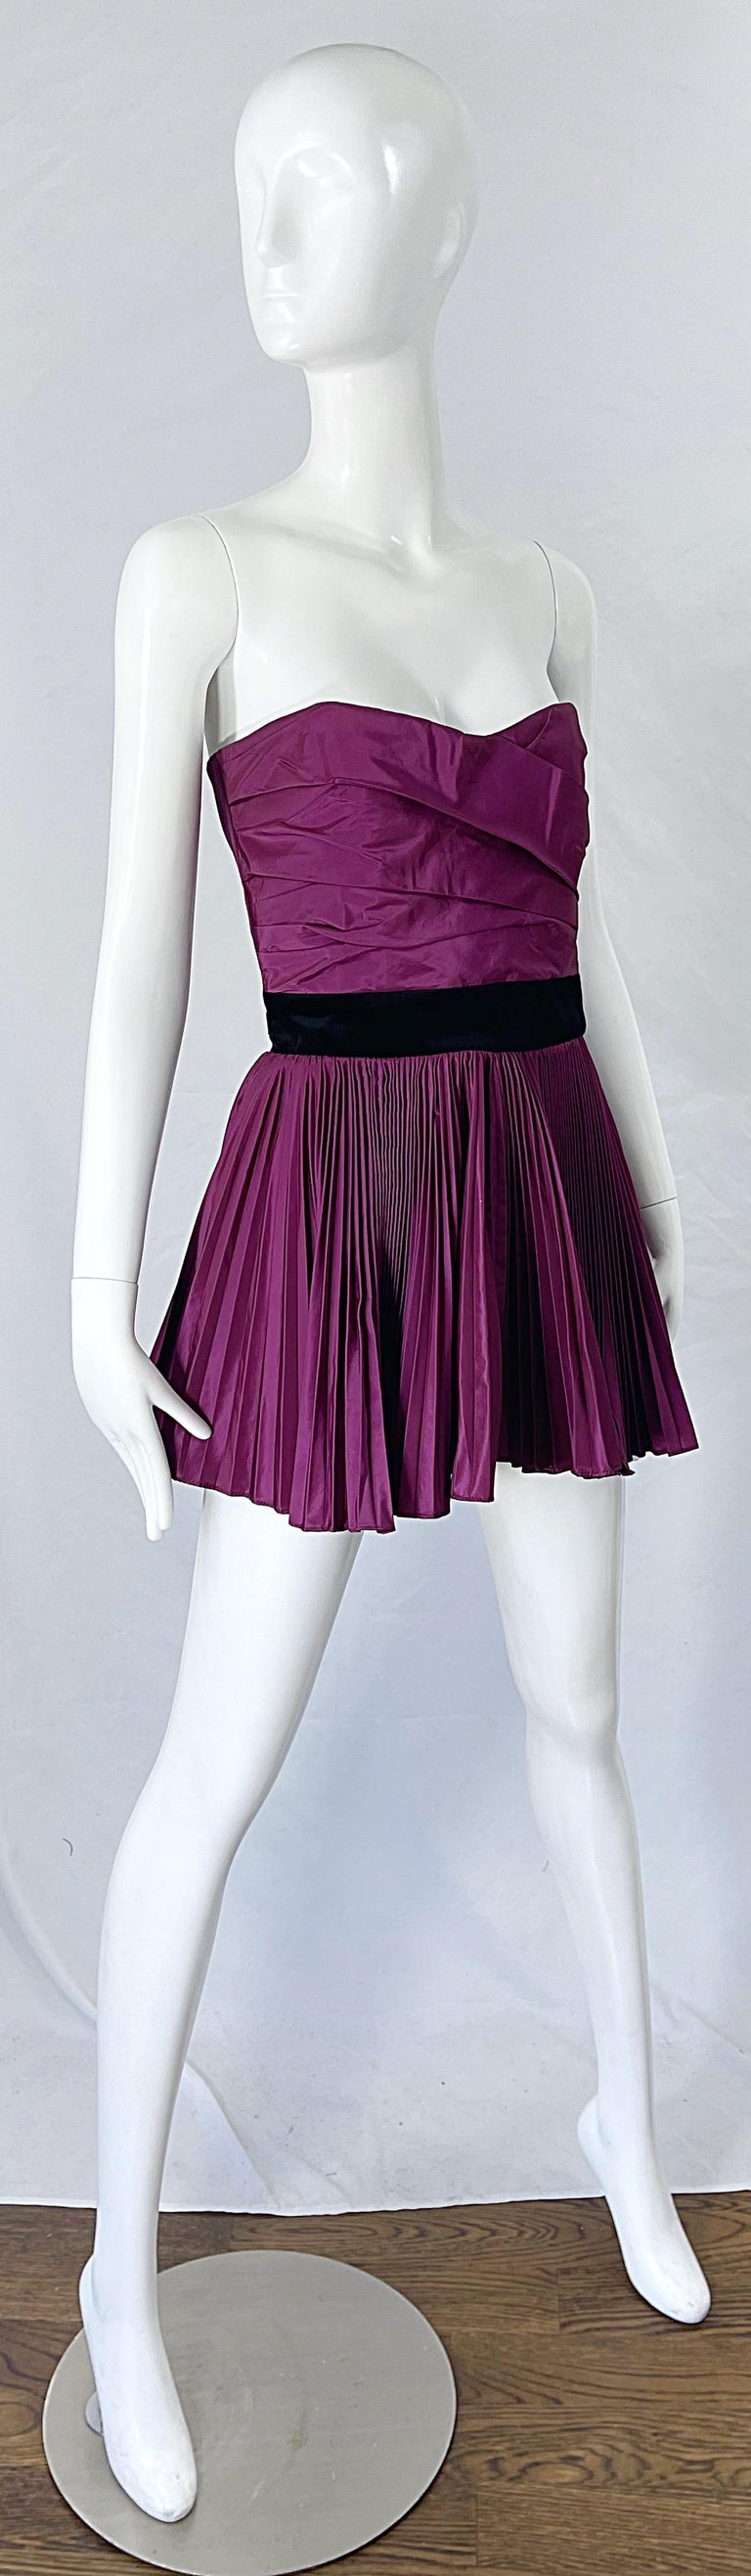 Yves Saint Laurent S/S 2012 Stefano Pilati Purple Silk Taffeta Mini Dress or Top For Sale 6